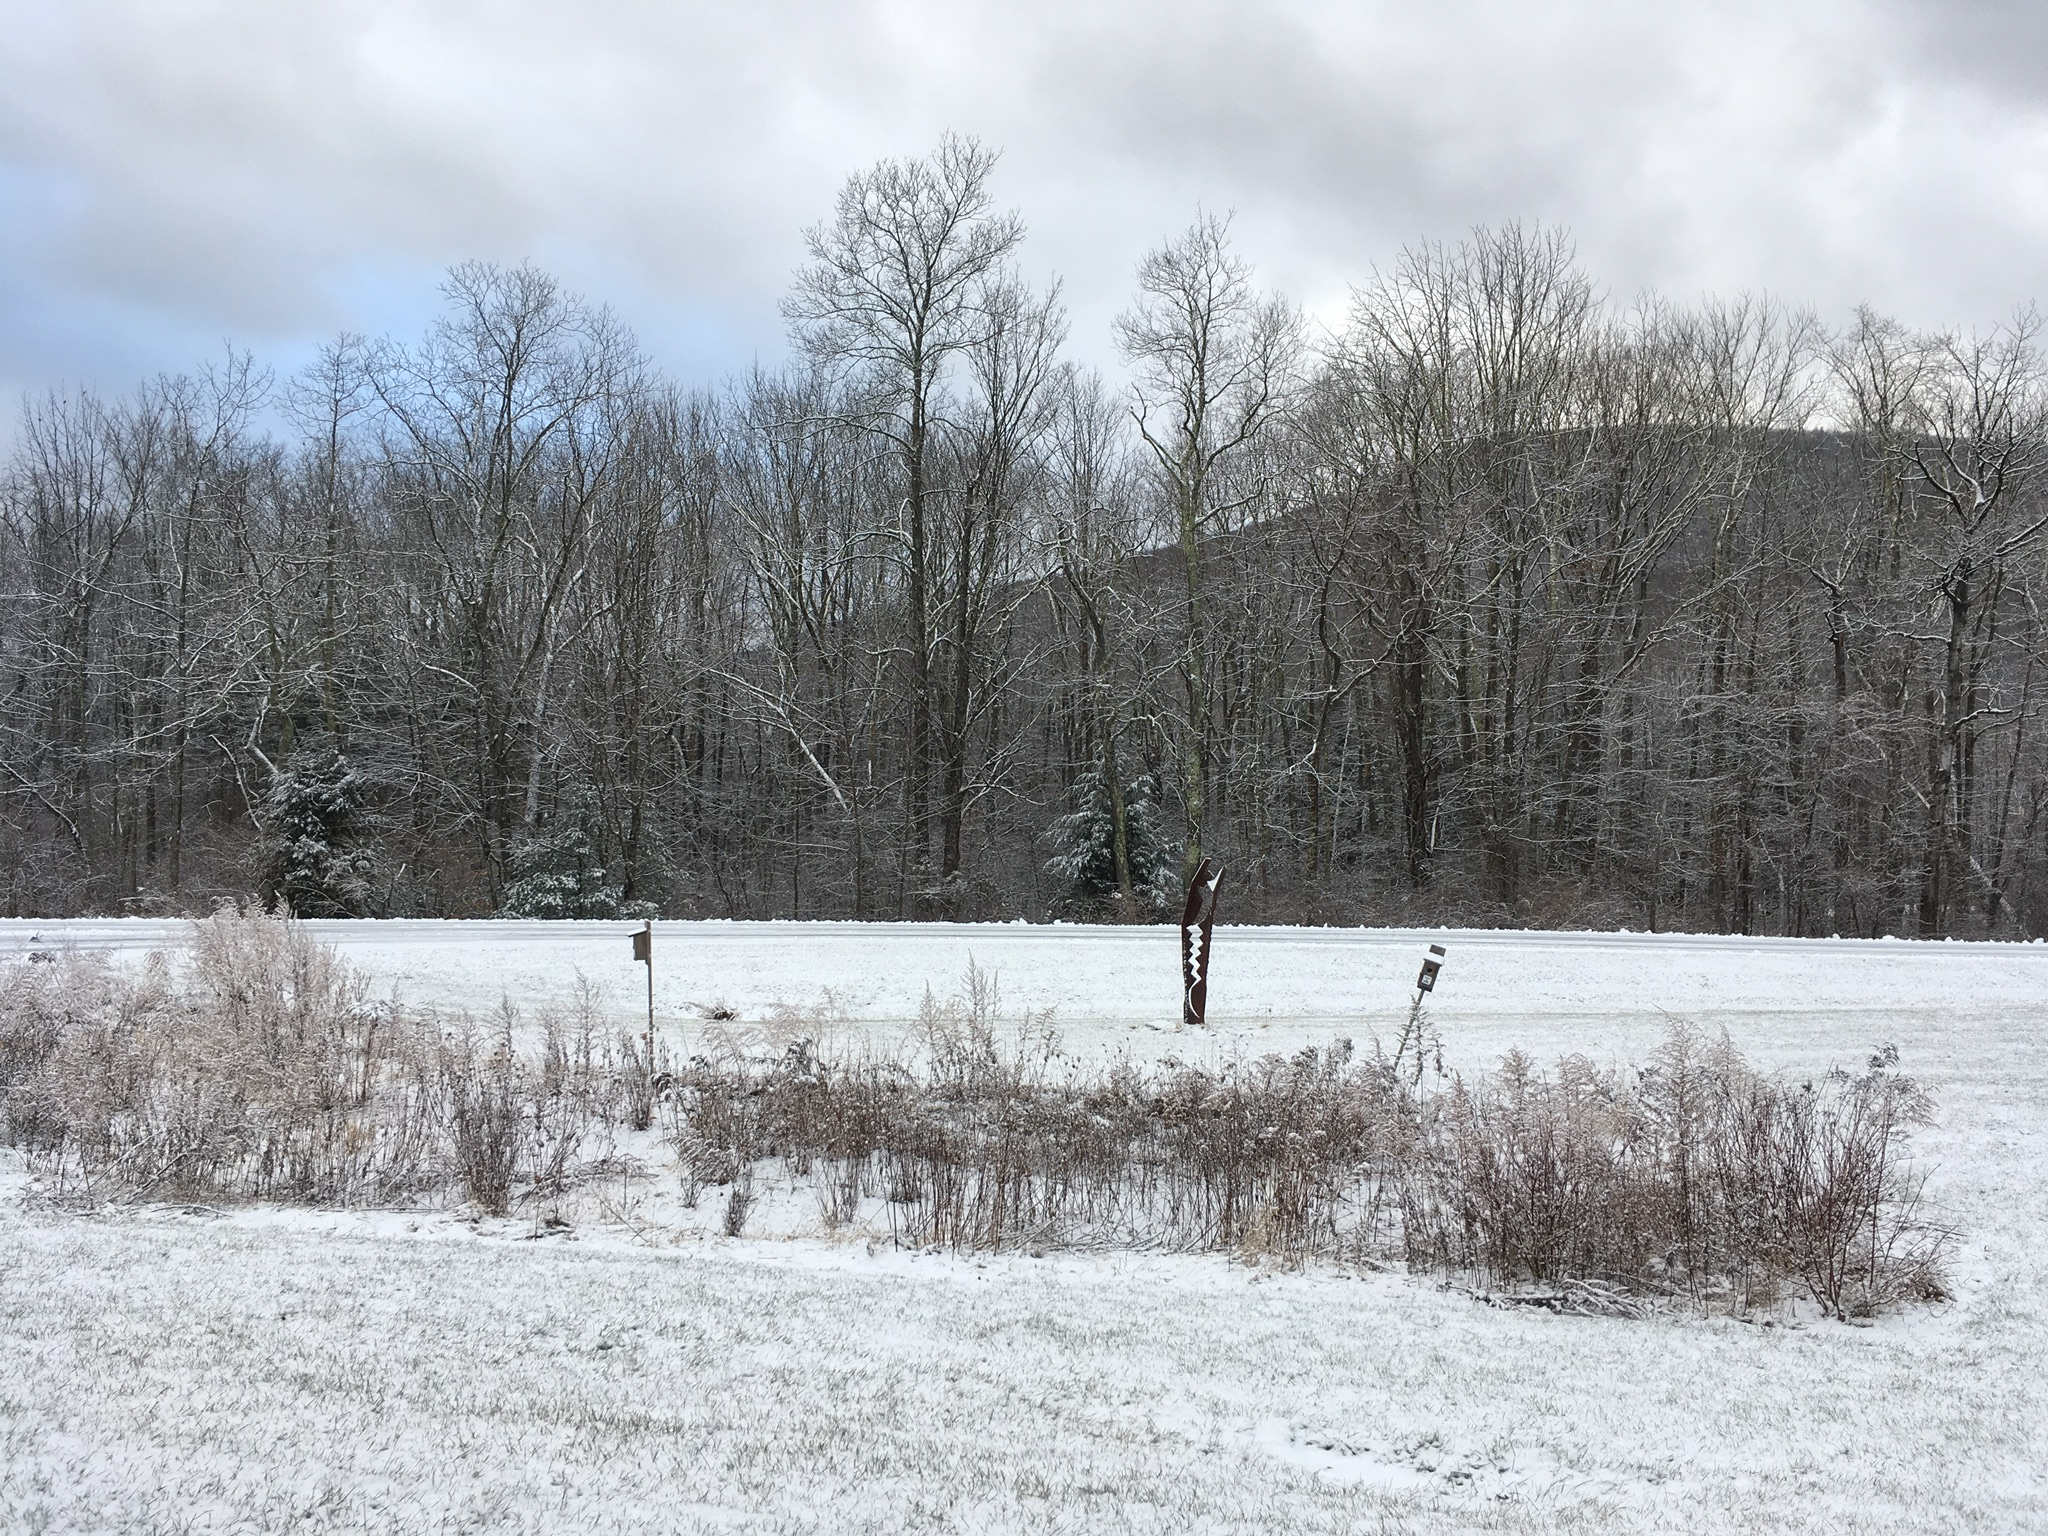 Sunday will be a snowy day across the Park, and Monday for MLK Day will have some of the lowest temperatures the Catskills have seen this winter.